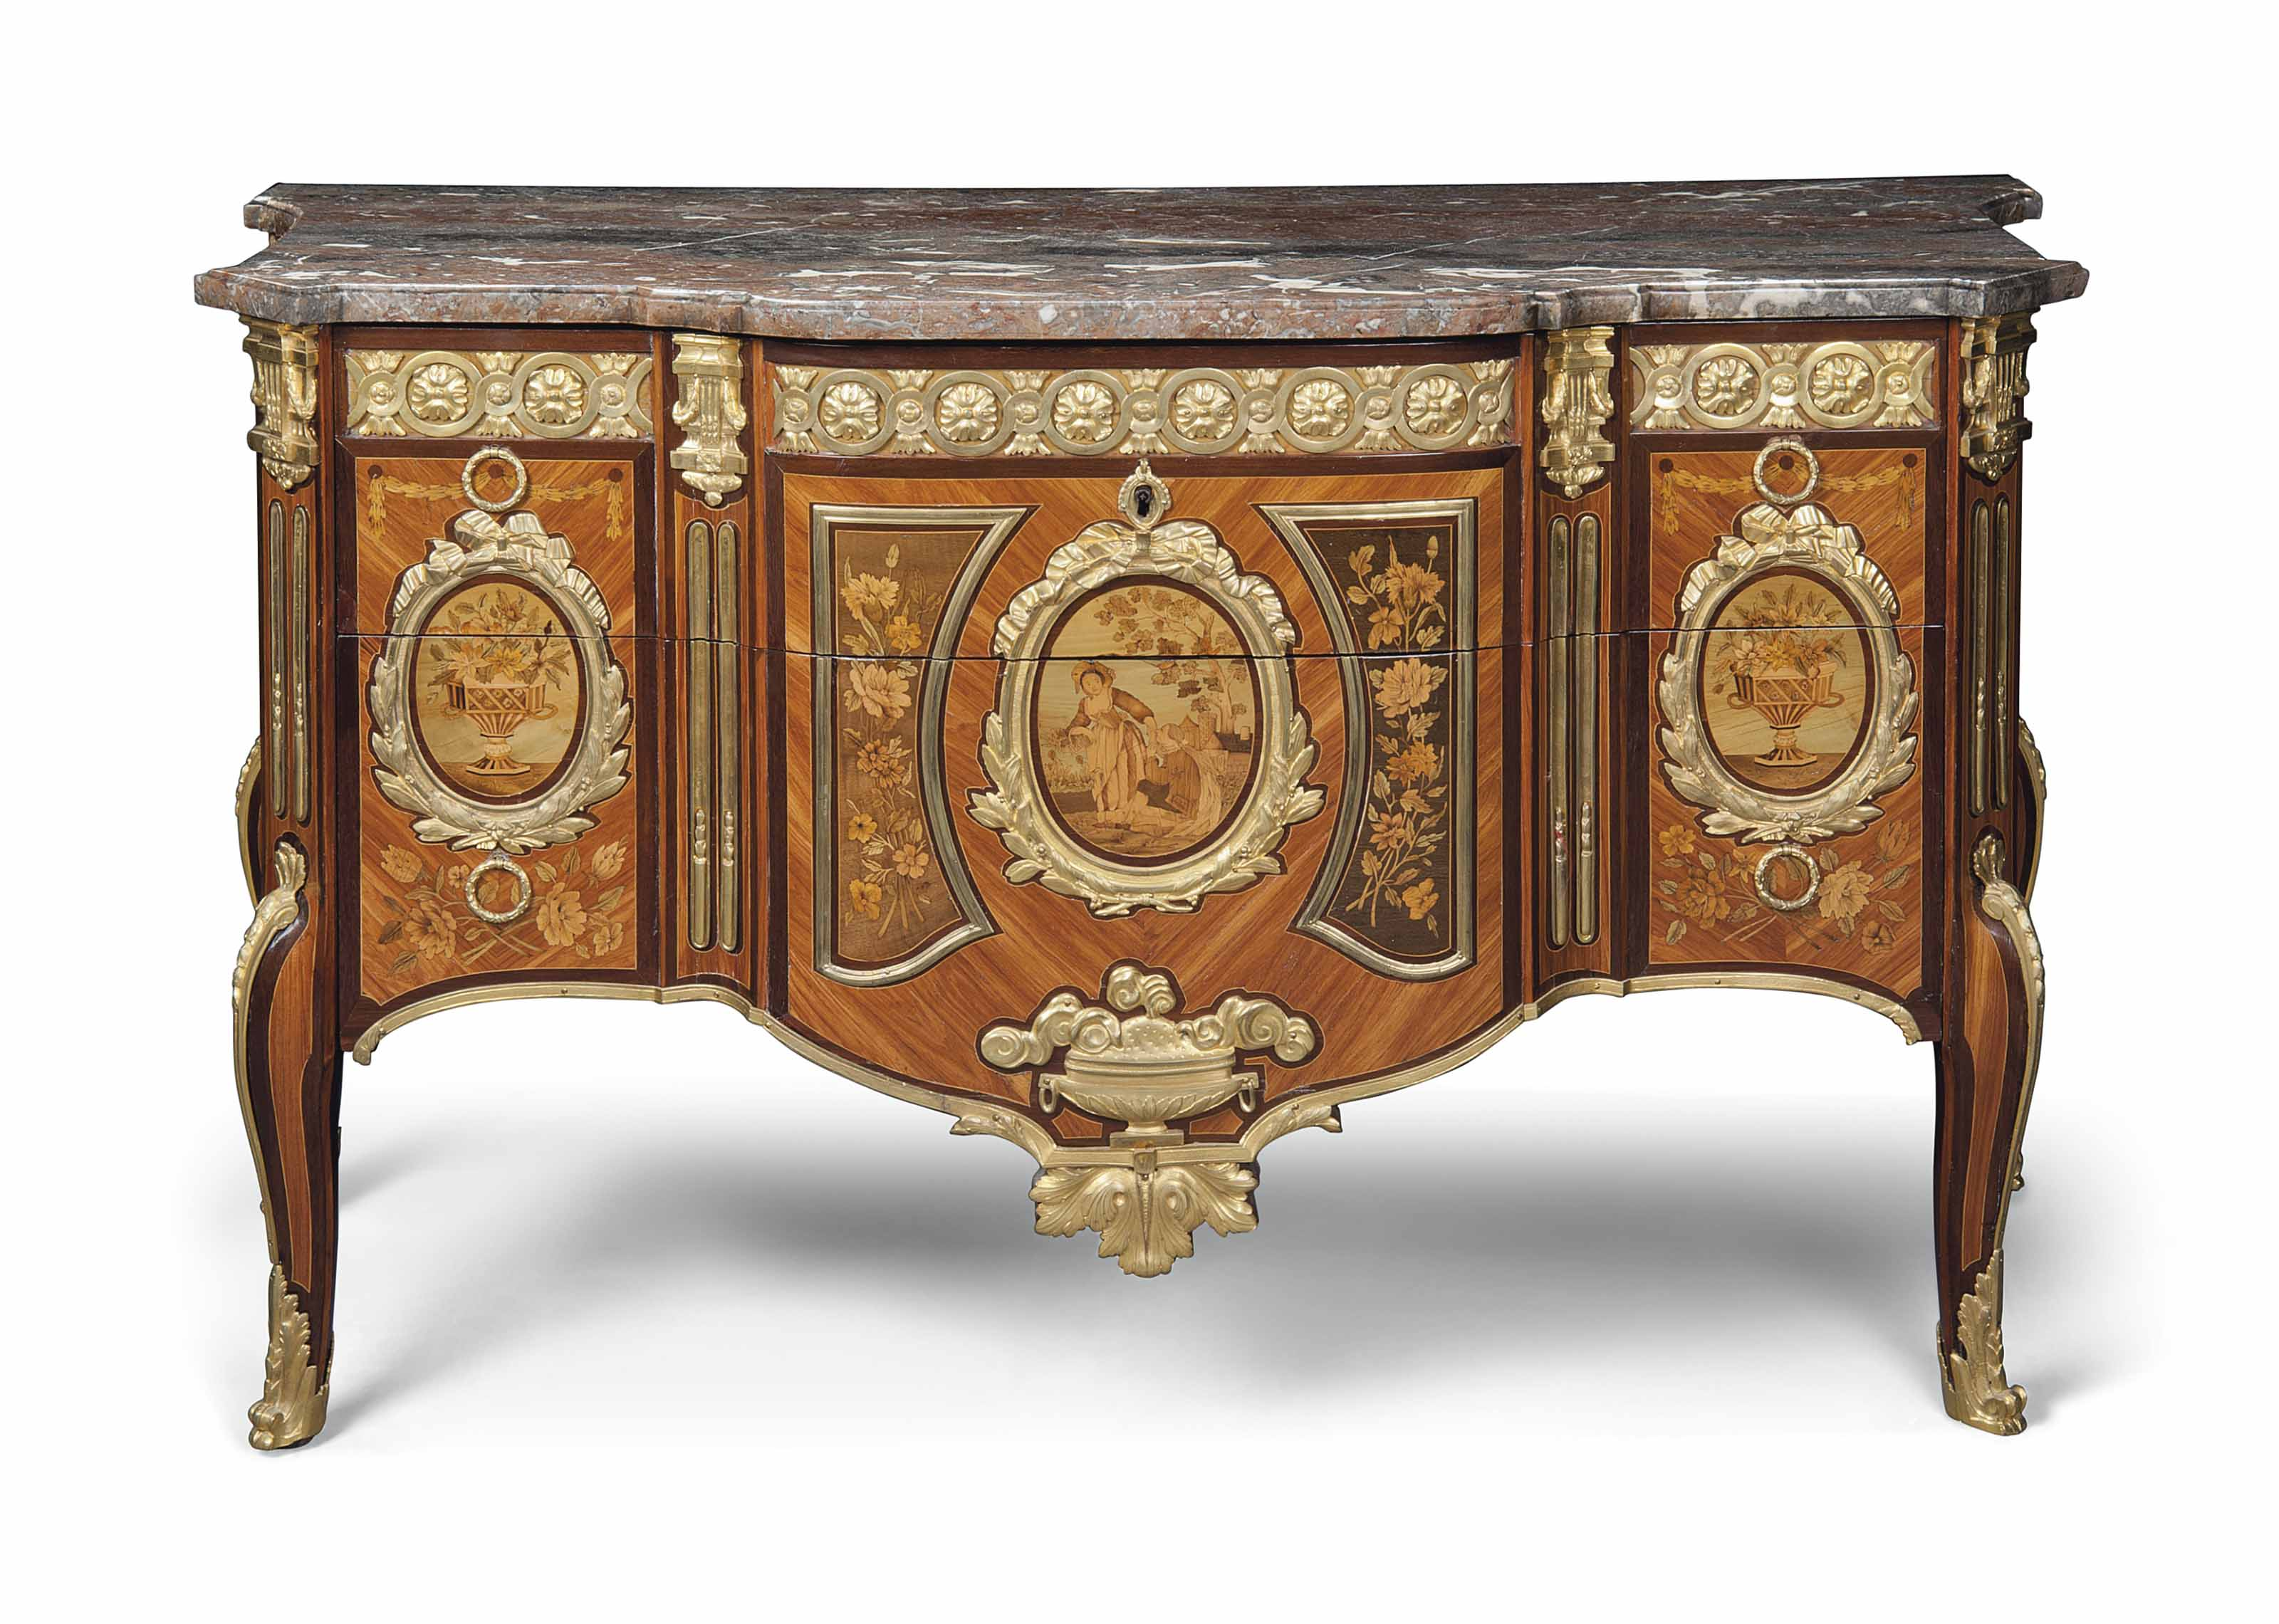 A LOUIS XVI ORMOLU-MOUNTED TULIPWOOD, AMARANTH AND FRUITWOOD MARQUETRY COMMODE